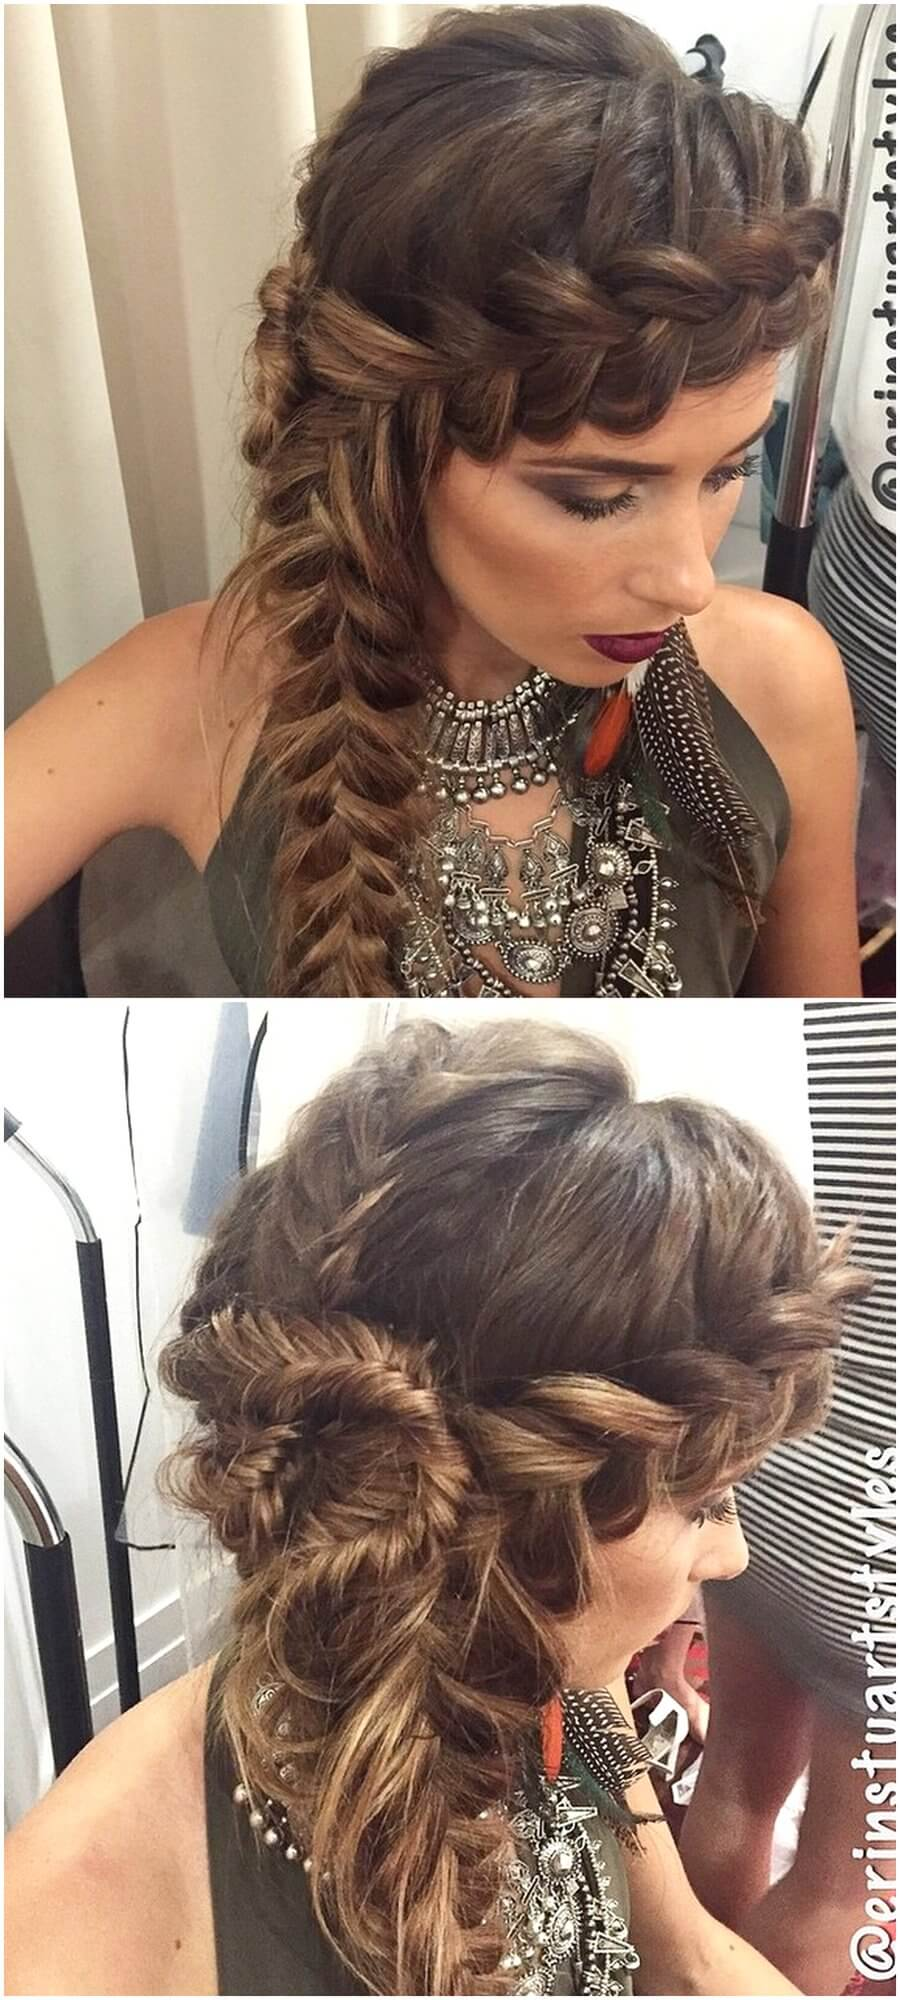 Cute Boho Style Girls Hair Styles For Any Kind of Hairs (10)